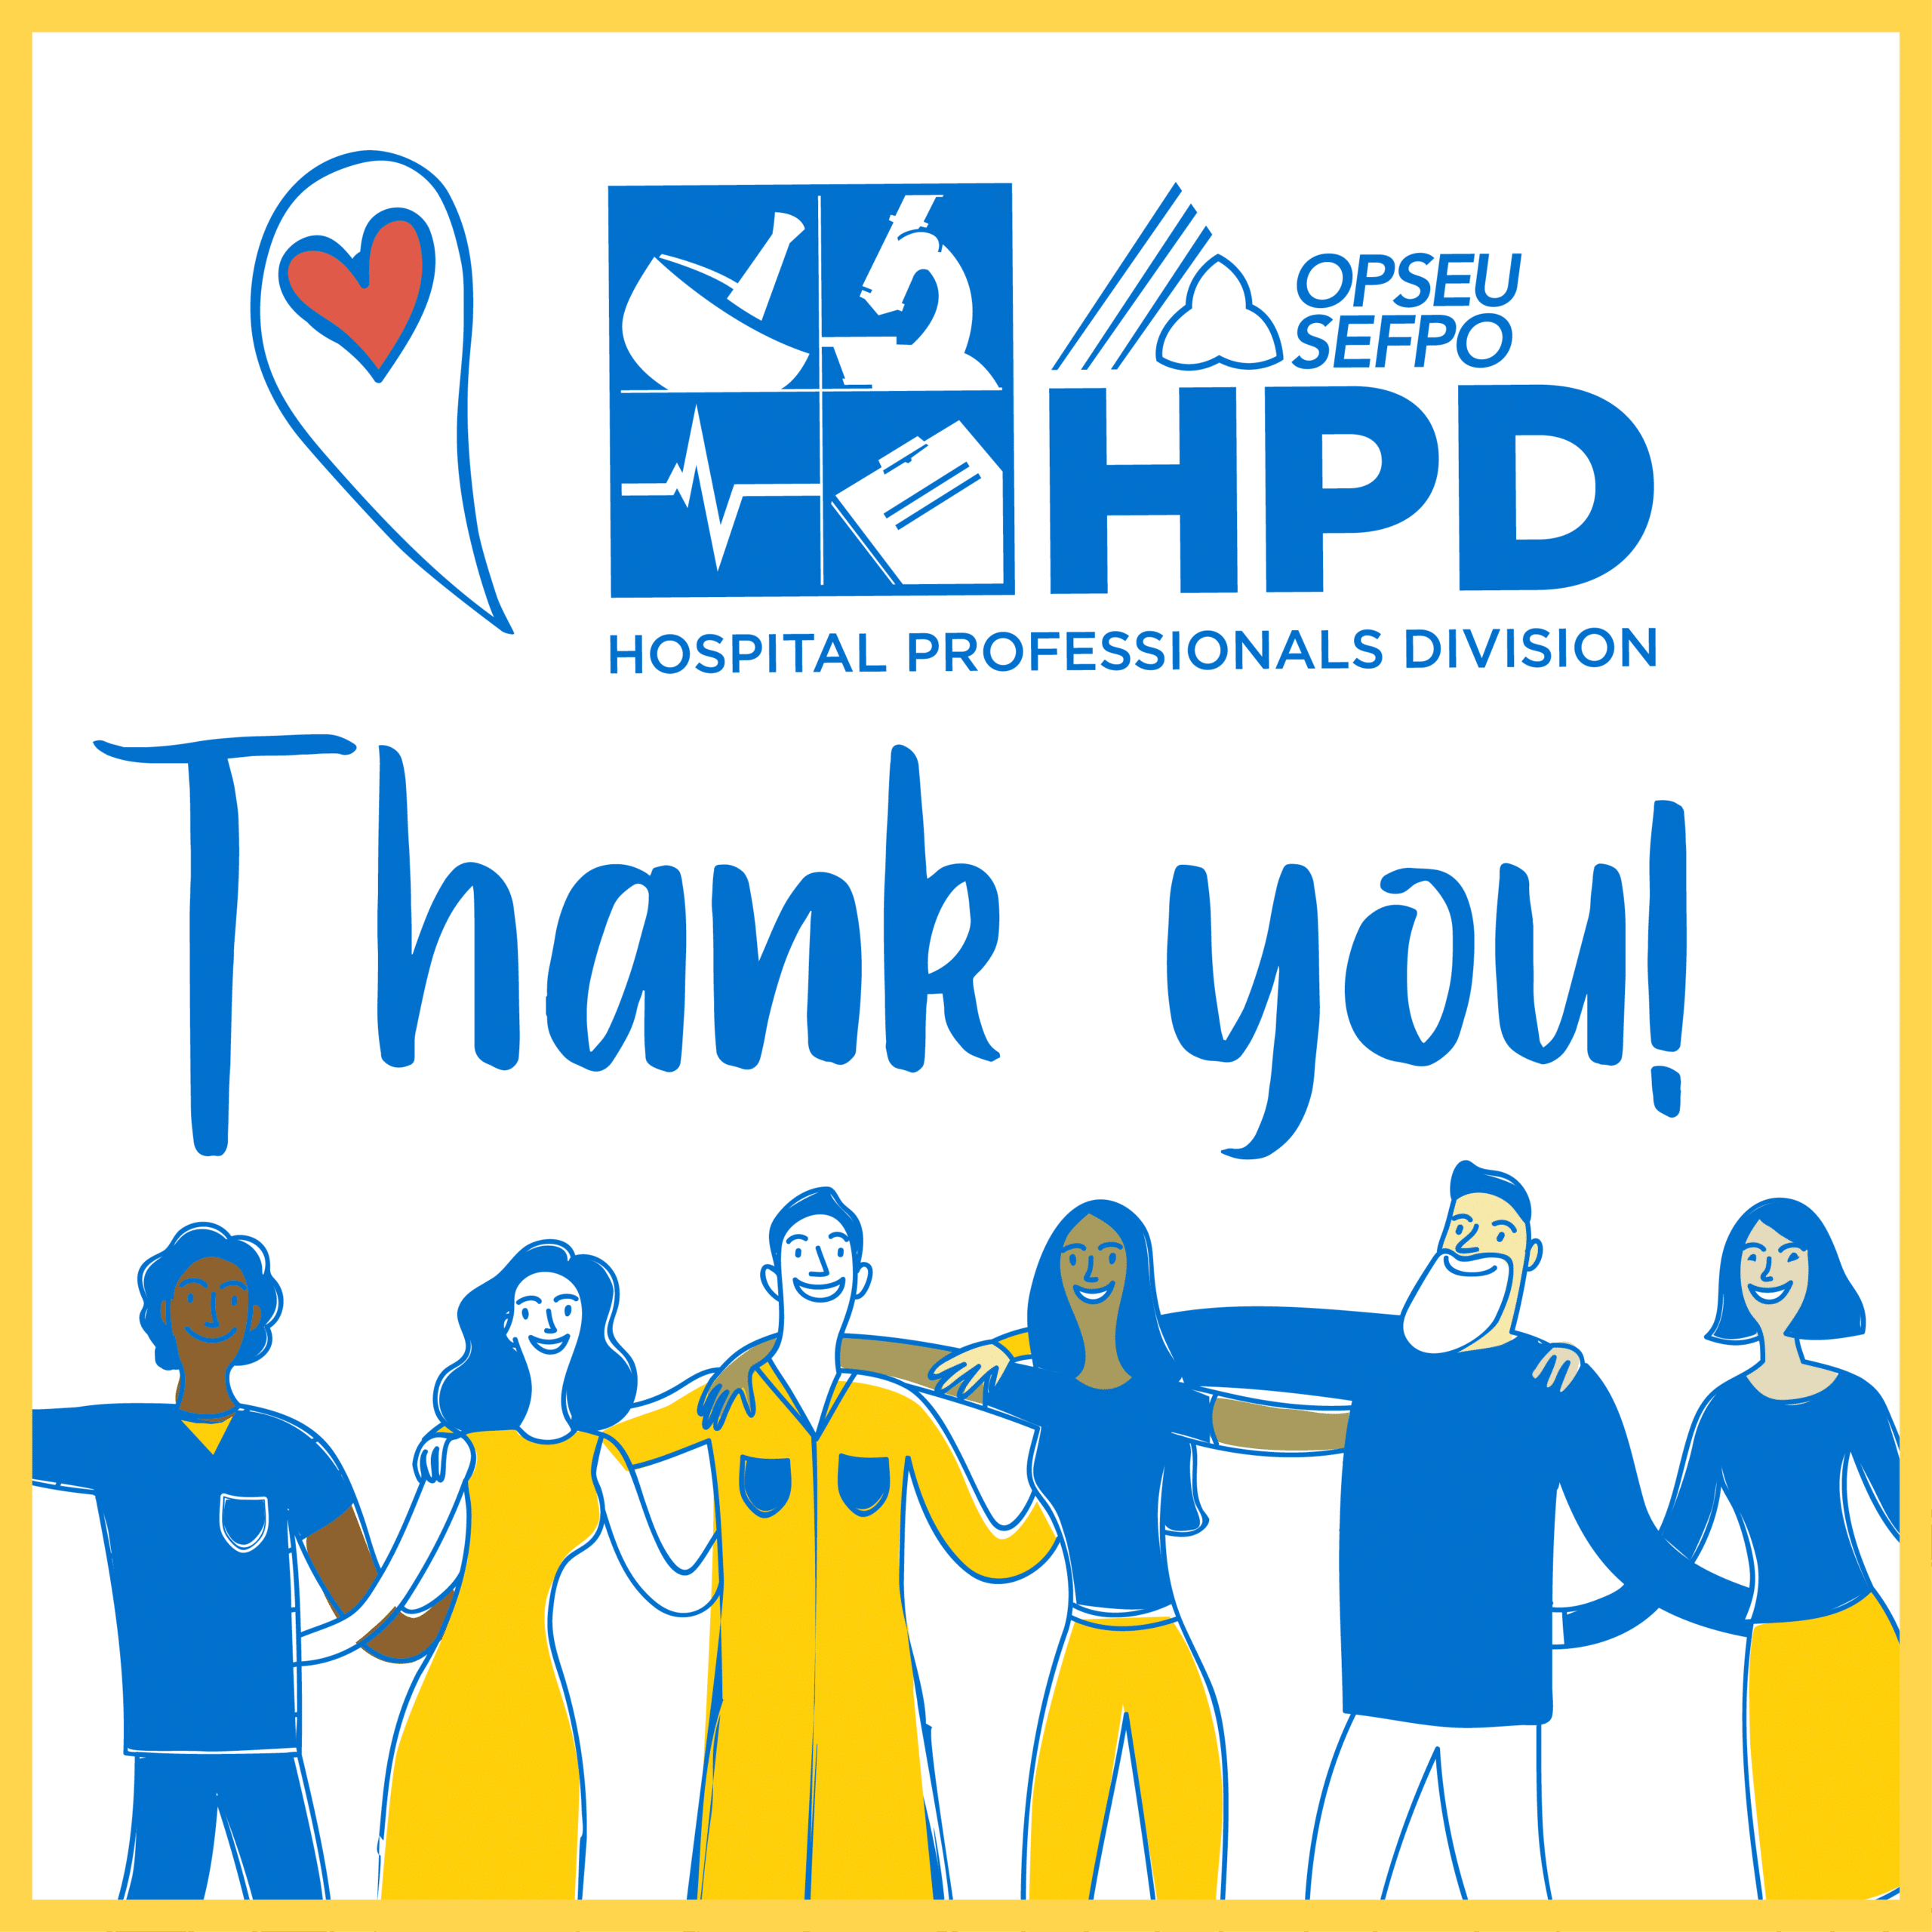 Thank you! OPSEU Hospital Professionals Division